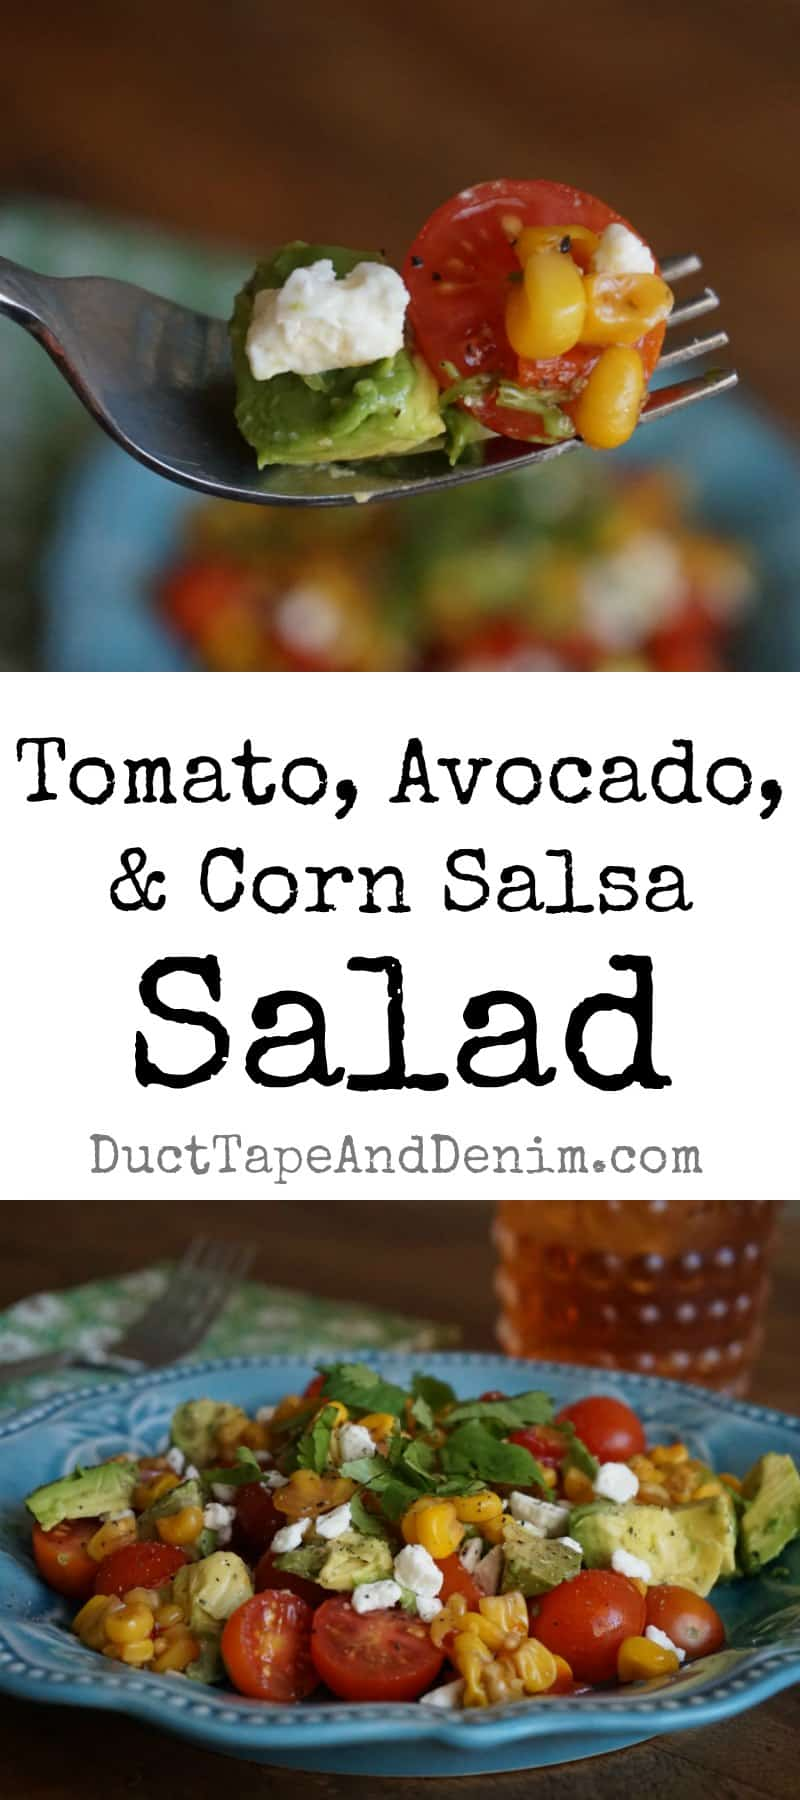 Tomato avocado and corn salsa salad recipe, Trader Joe's | DuctTapeAndDenim.com